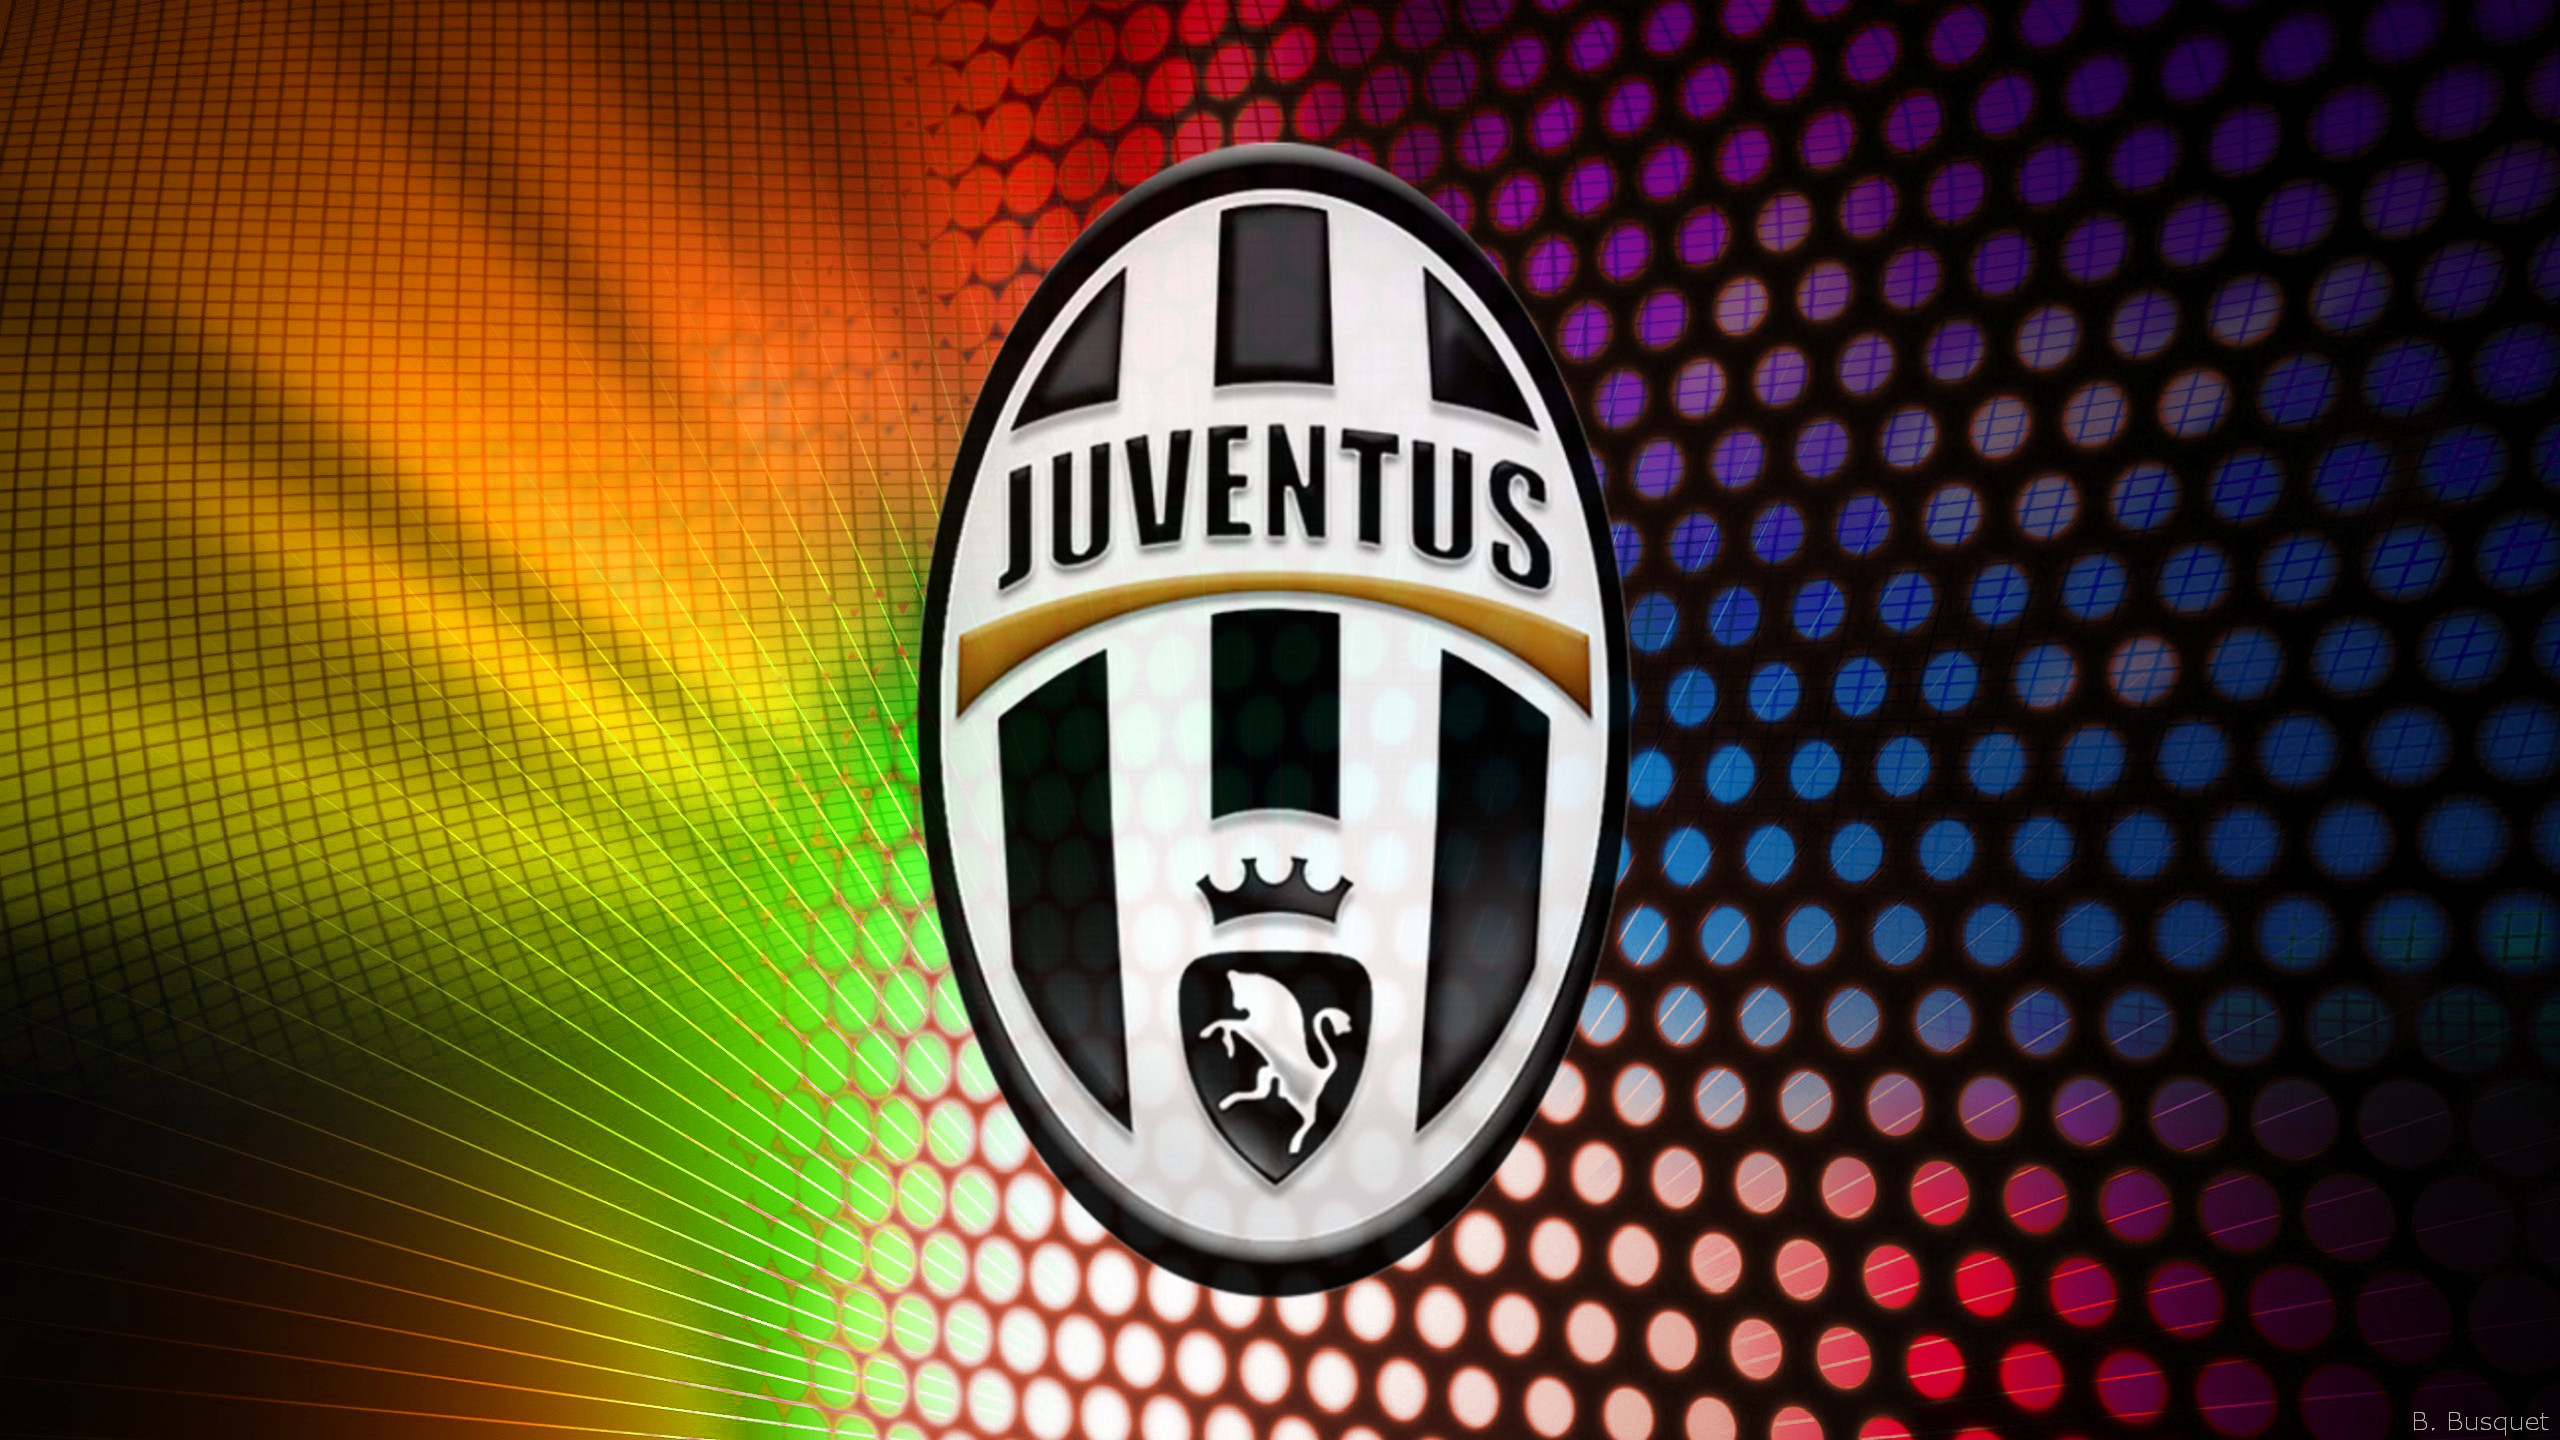 juventus f c logo wallpapers barbara s hd wallpapers juventus f c logo wallpapers barbara